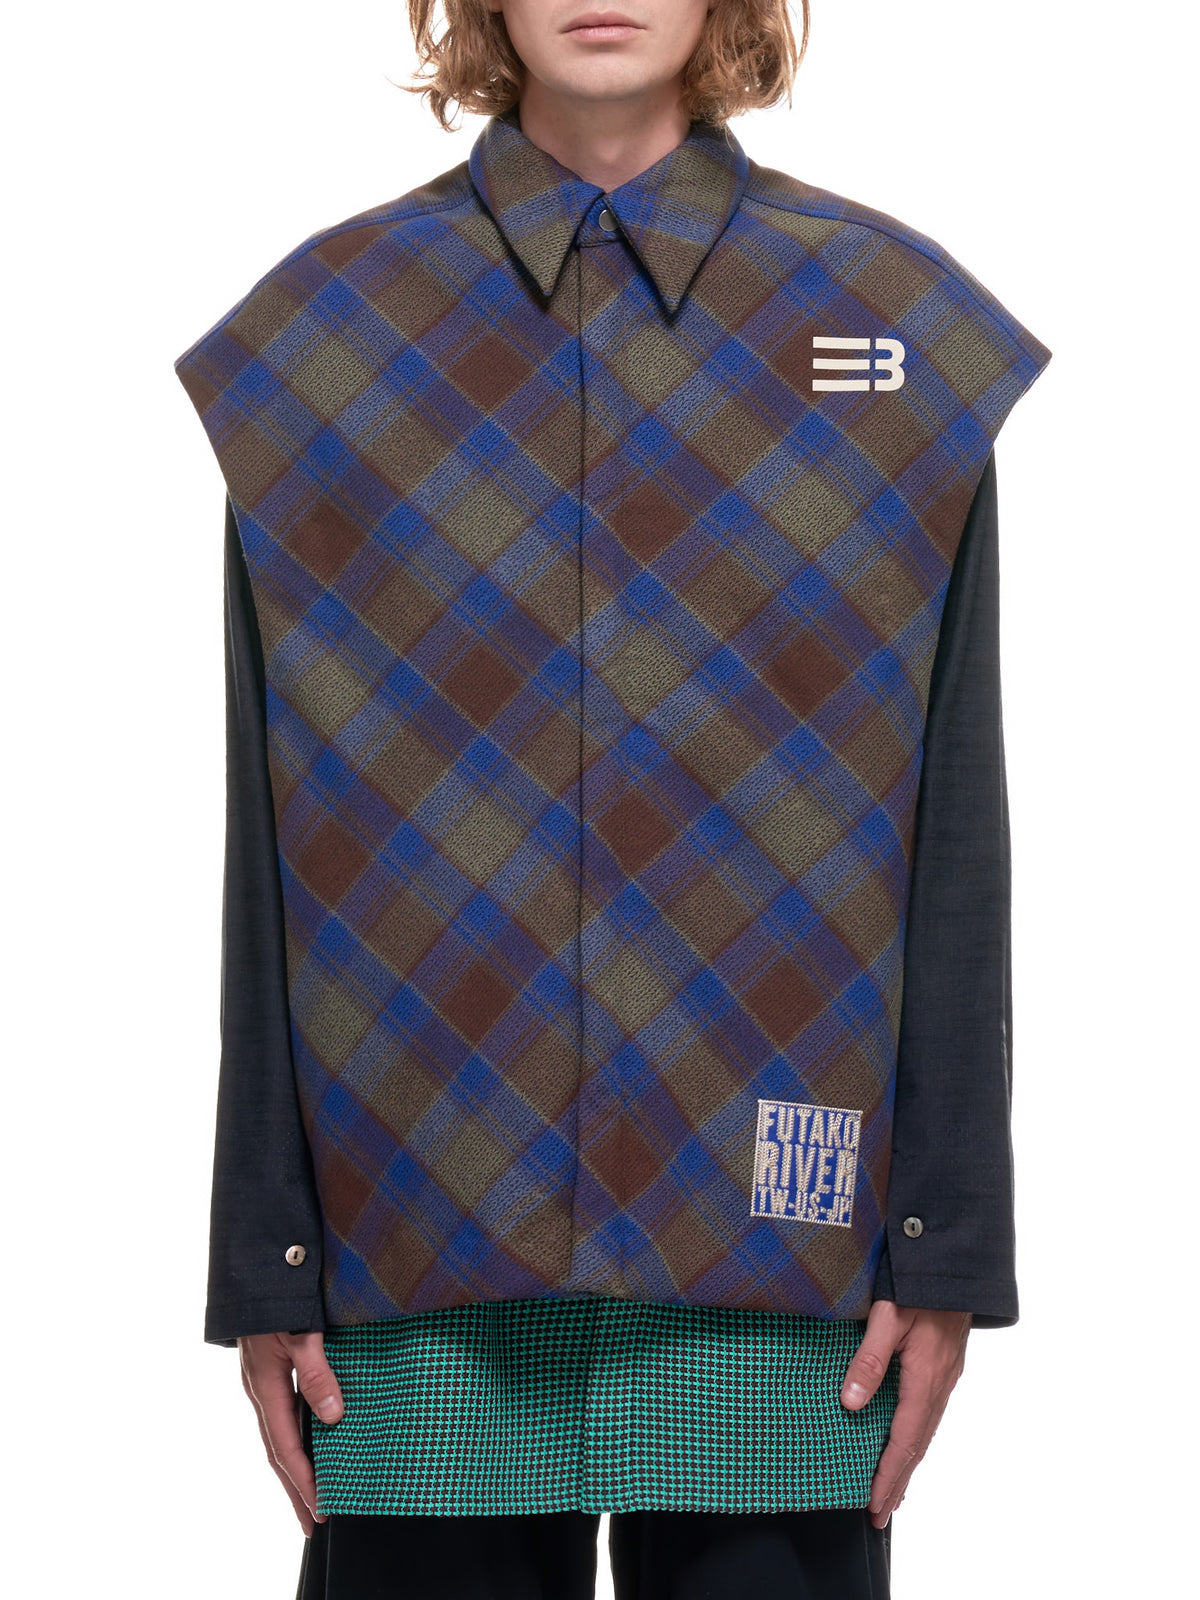 Hampton SL Padded Jacquard Plaid Vest (ST-02A-HAMPTON-B-EB-PLAID)